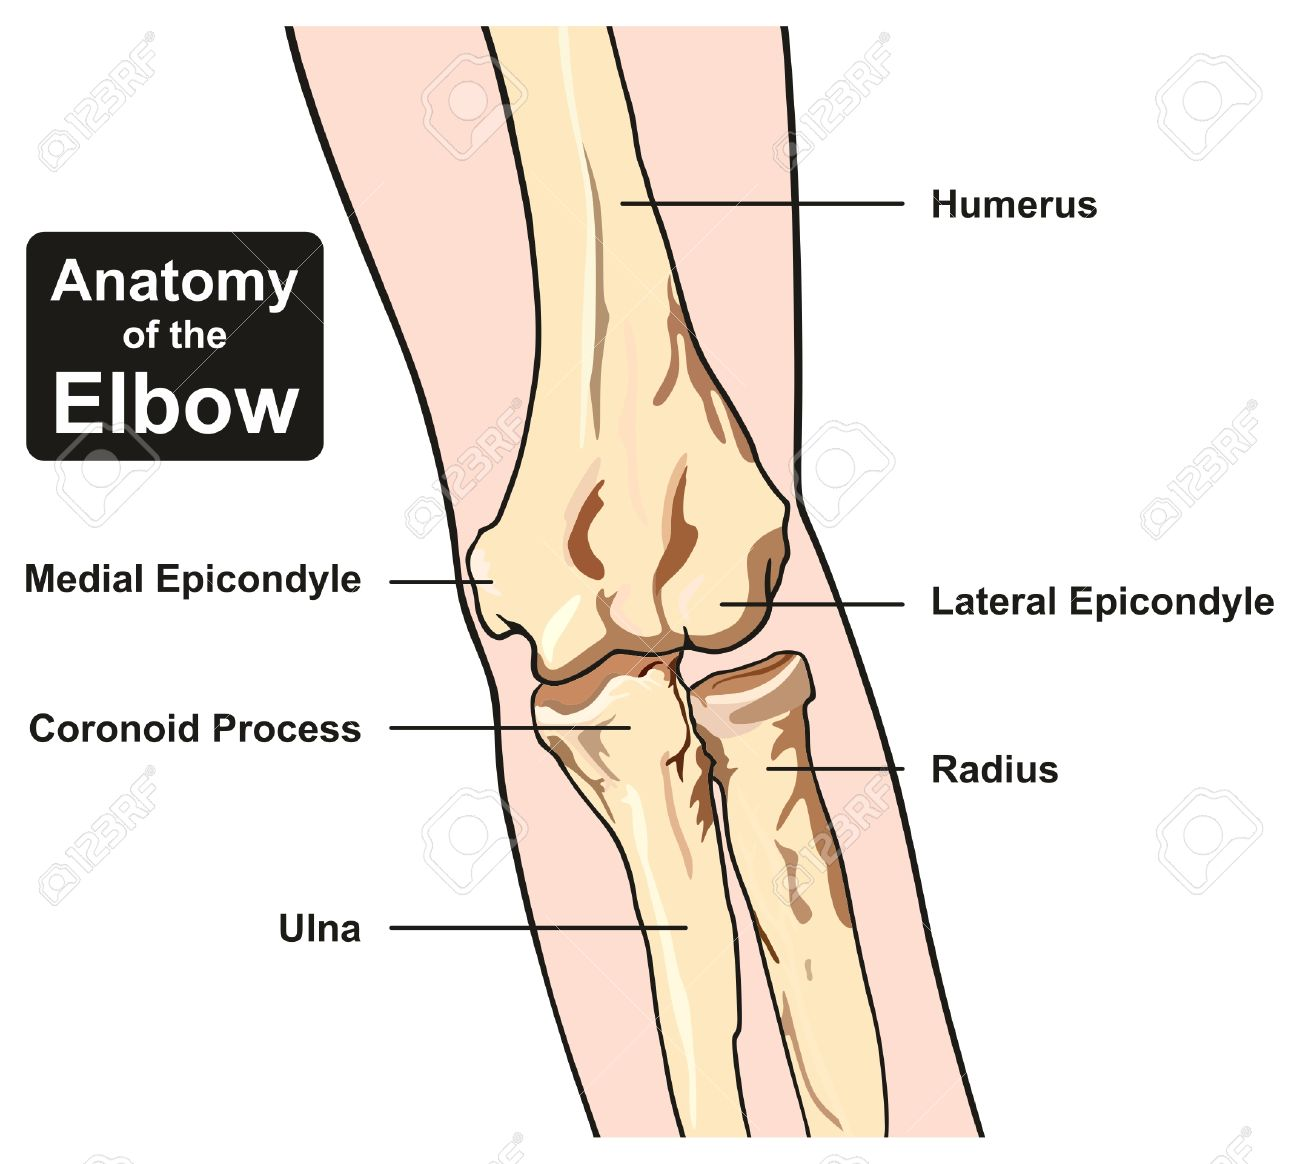 Anatomy Of The Elbow Joint Diagram Including All Bones Humerus